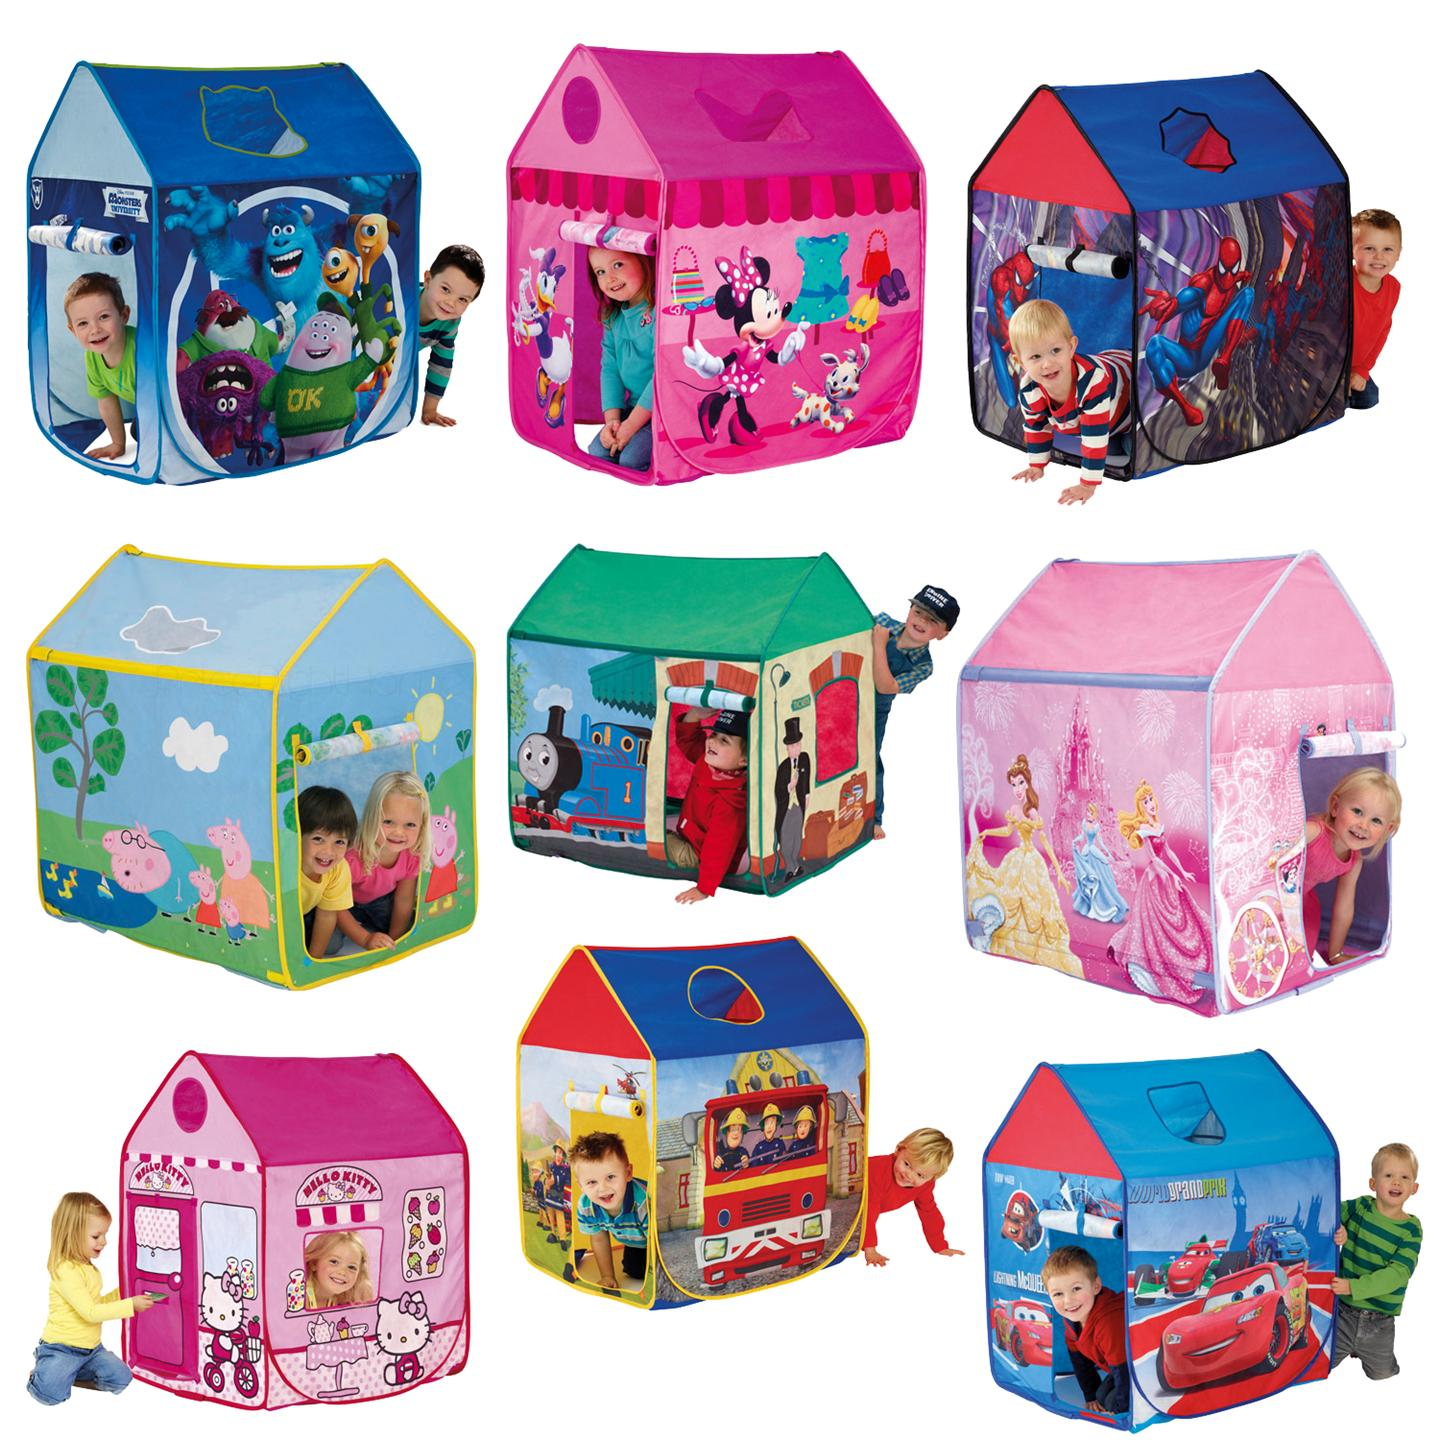 Getgo Fireman Sam Pop Up Play Wendy House Tent 2 Years Worlds  sc 1 st  Best Tent 2017 & Wendy House Pop Up Tent - Best Tent 2017